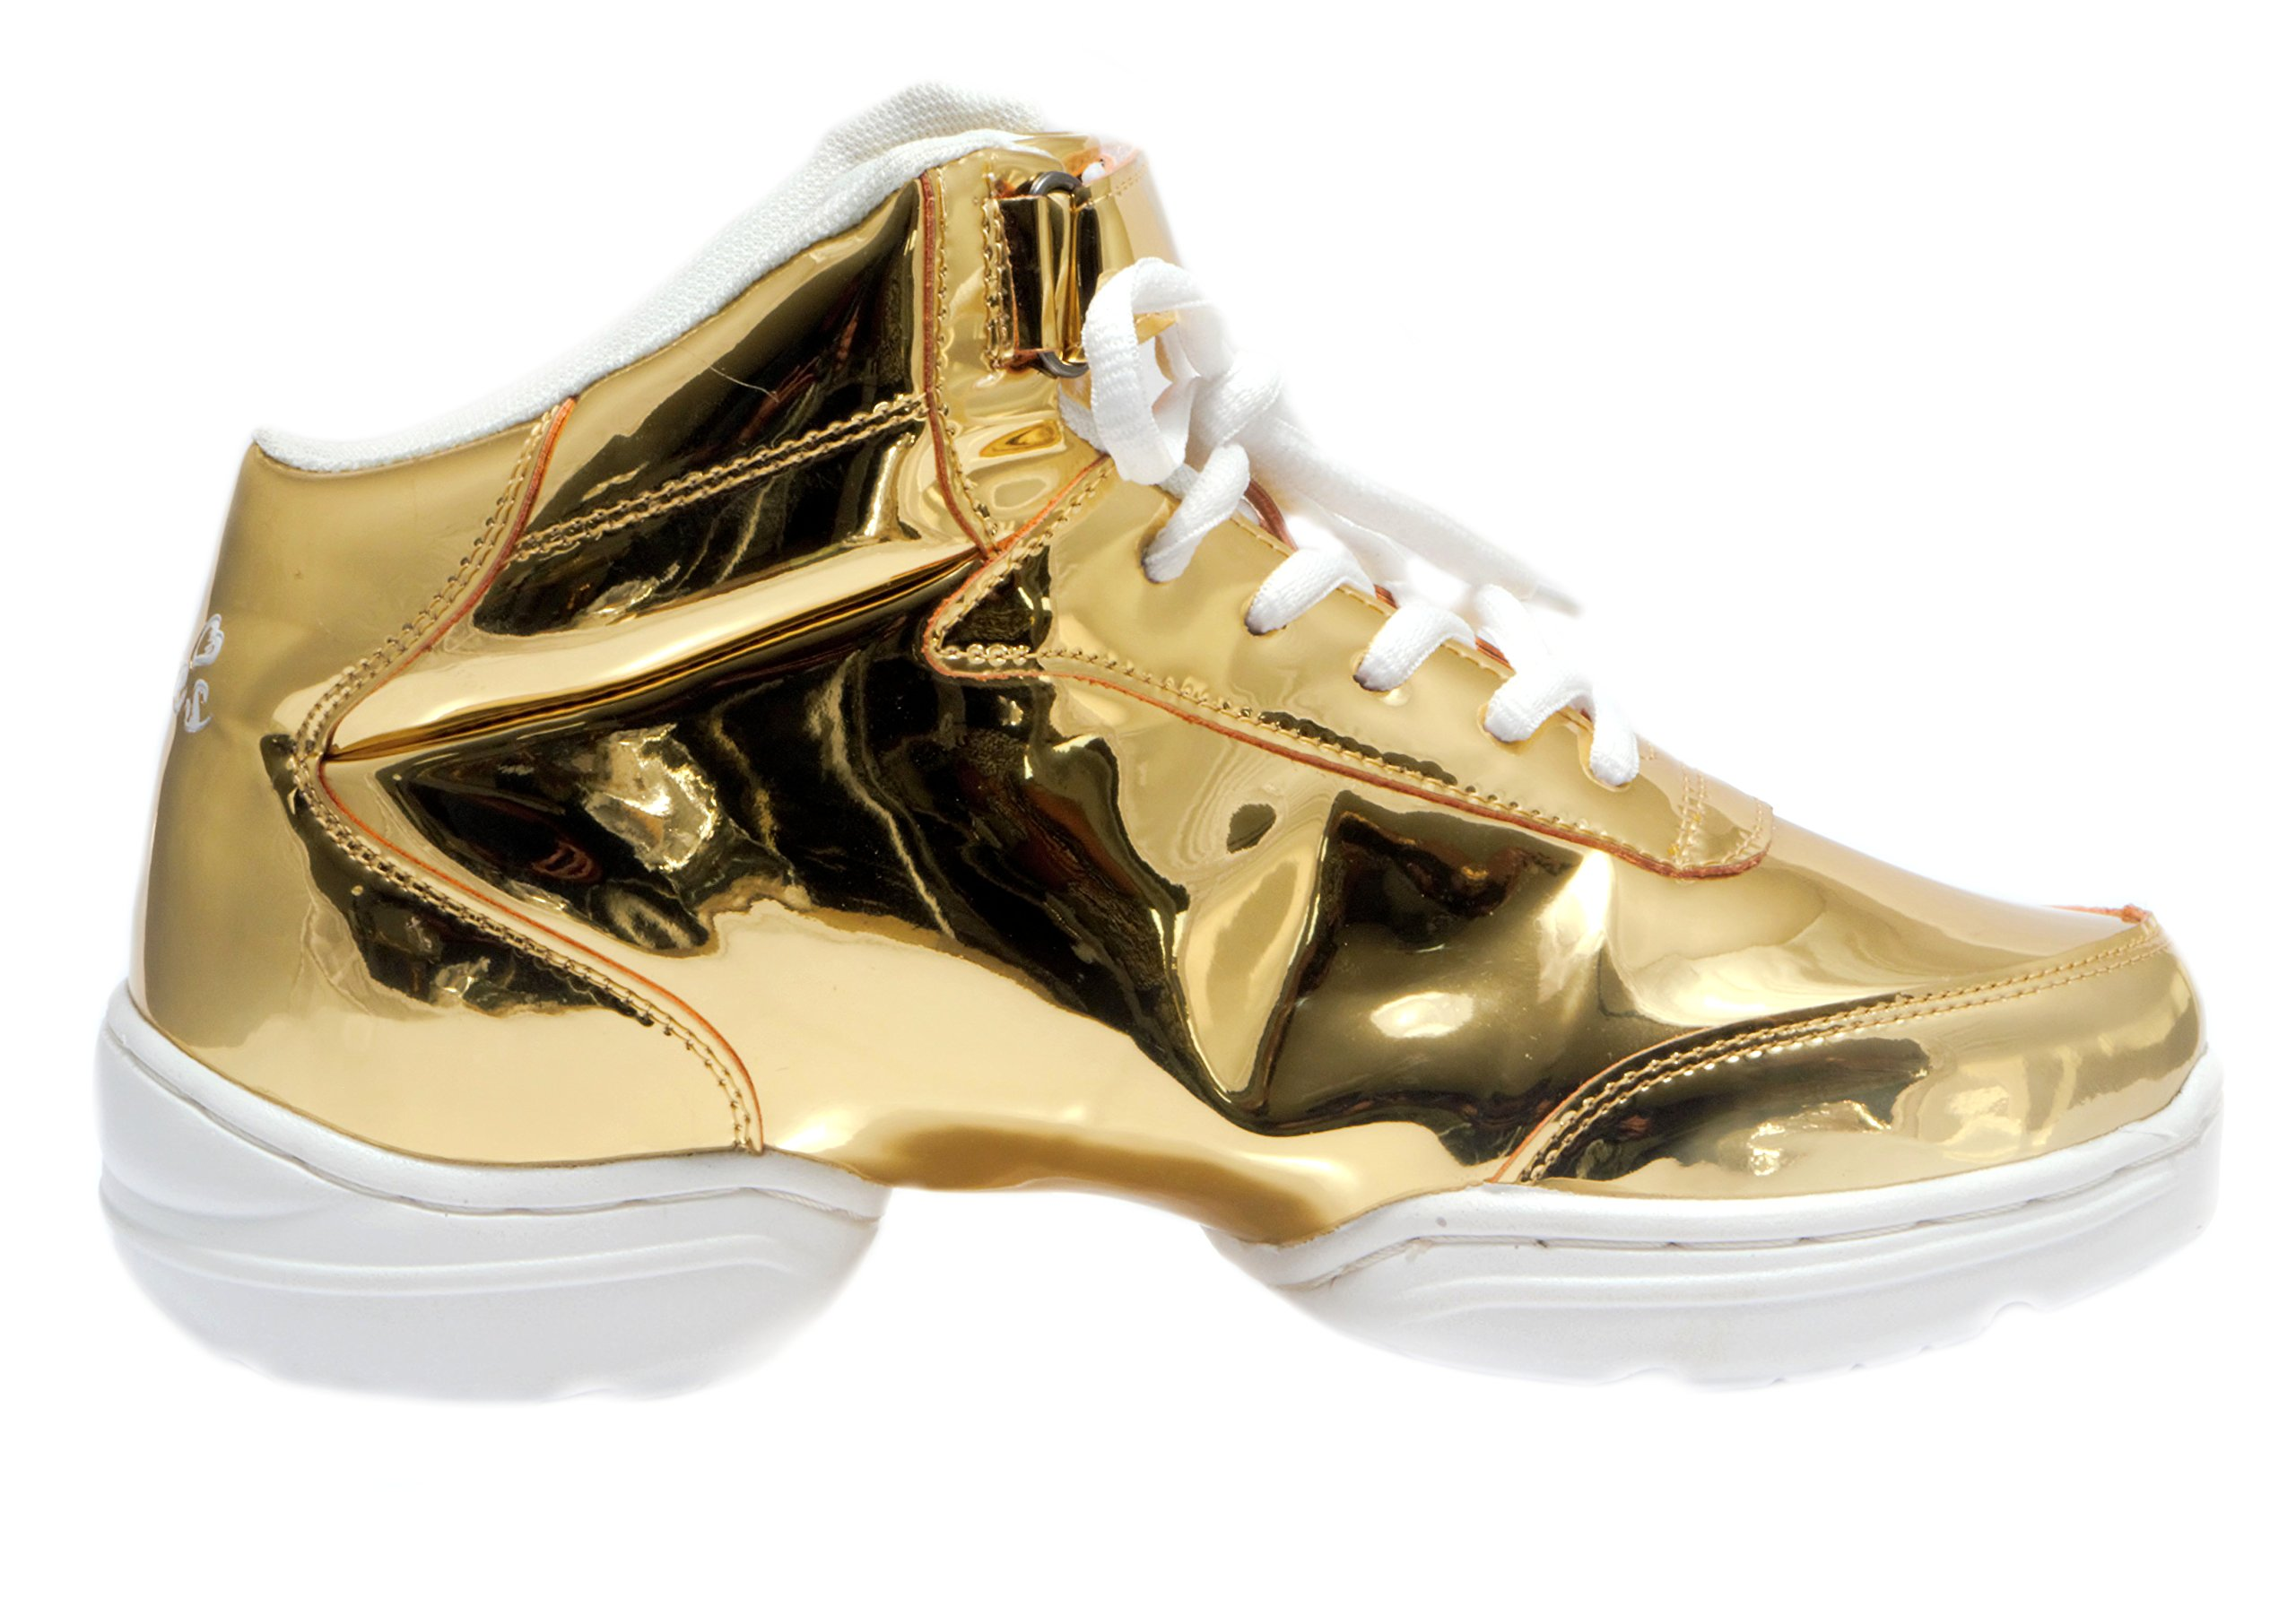 Nene's Collection Gold Women's Dance Fitness Shoes High Top Sneakers (6.5) by Nene's Collection (Image #2)